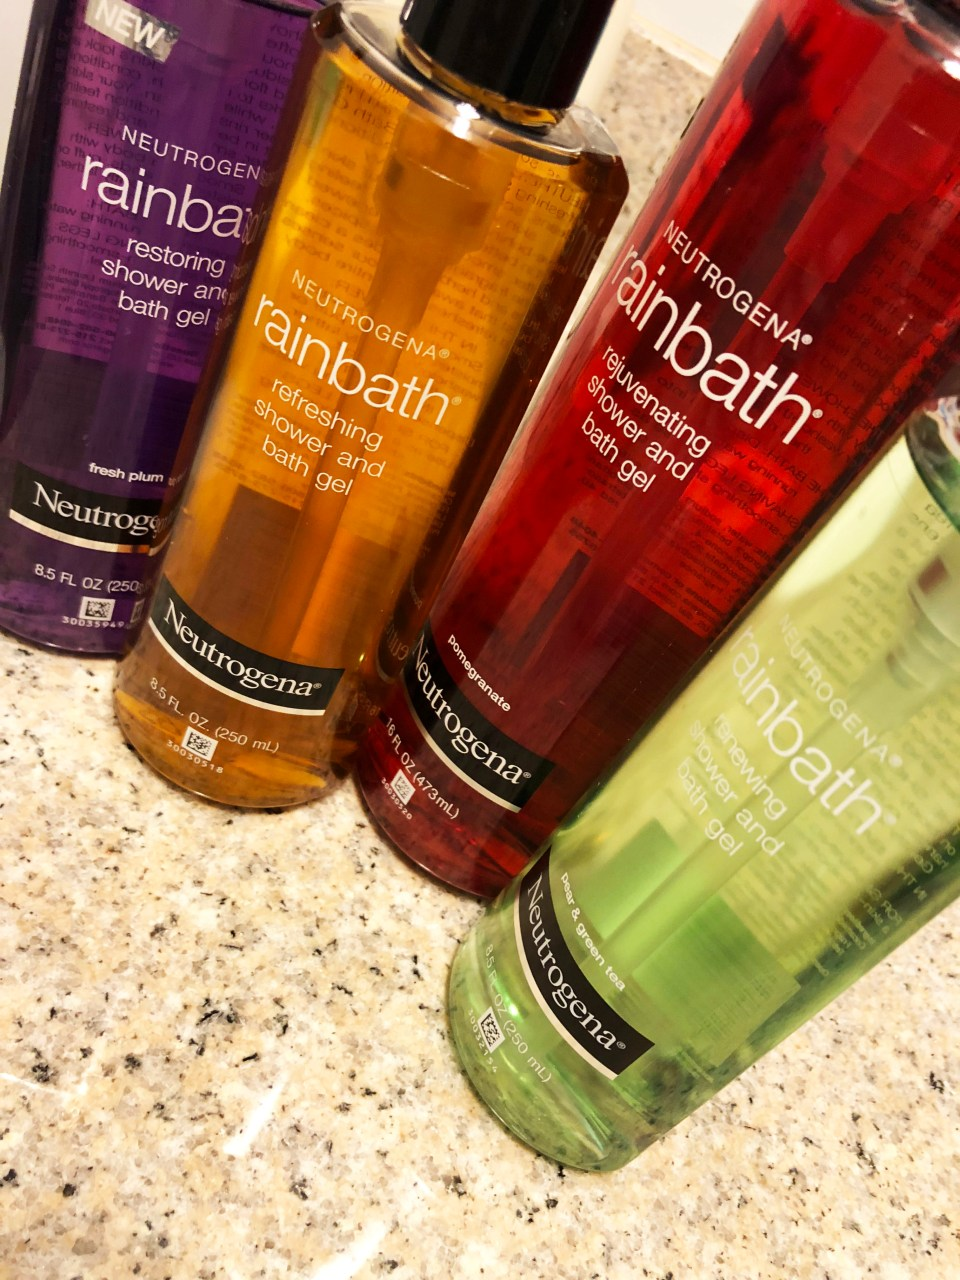 Neutrogena Rainbath Shower & Bath Gel 1